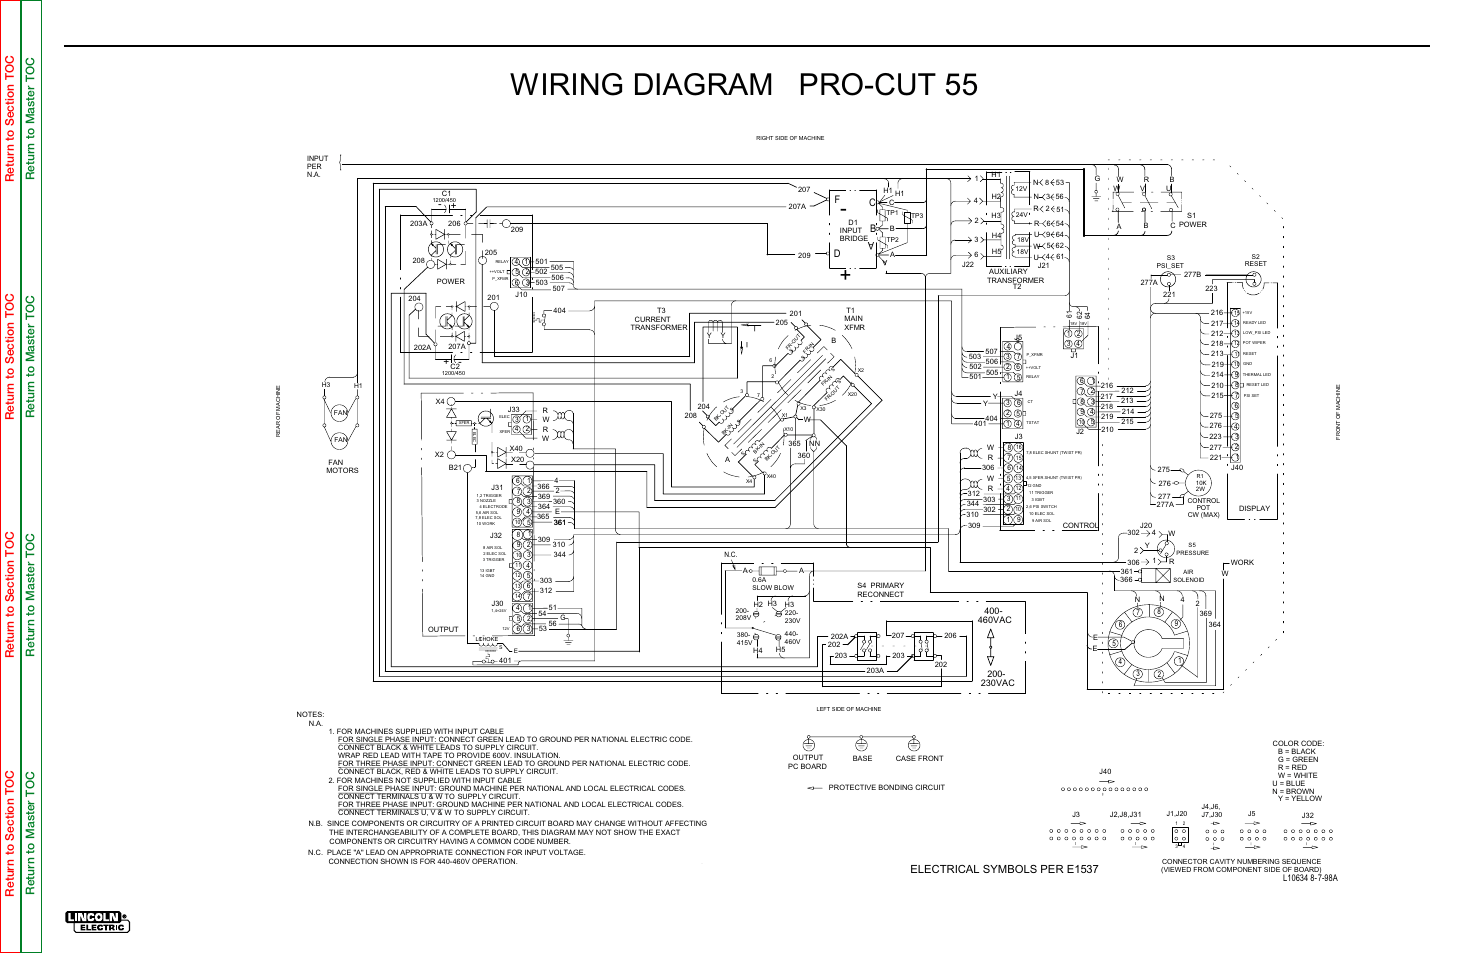 Wiring diagram pro-cut 55, Electrical diagrams, Wiring